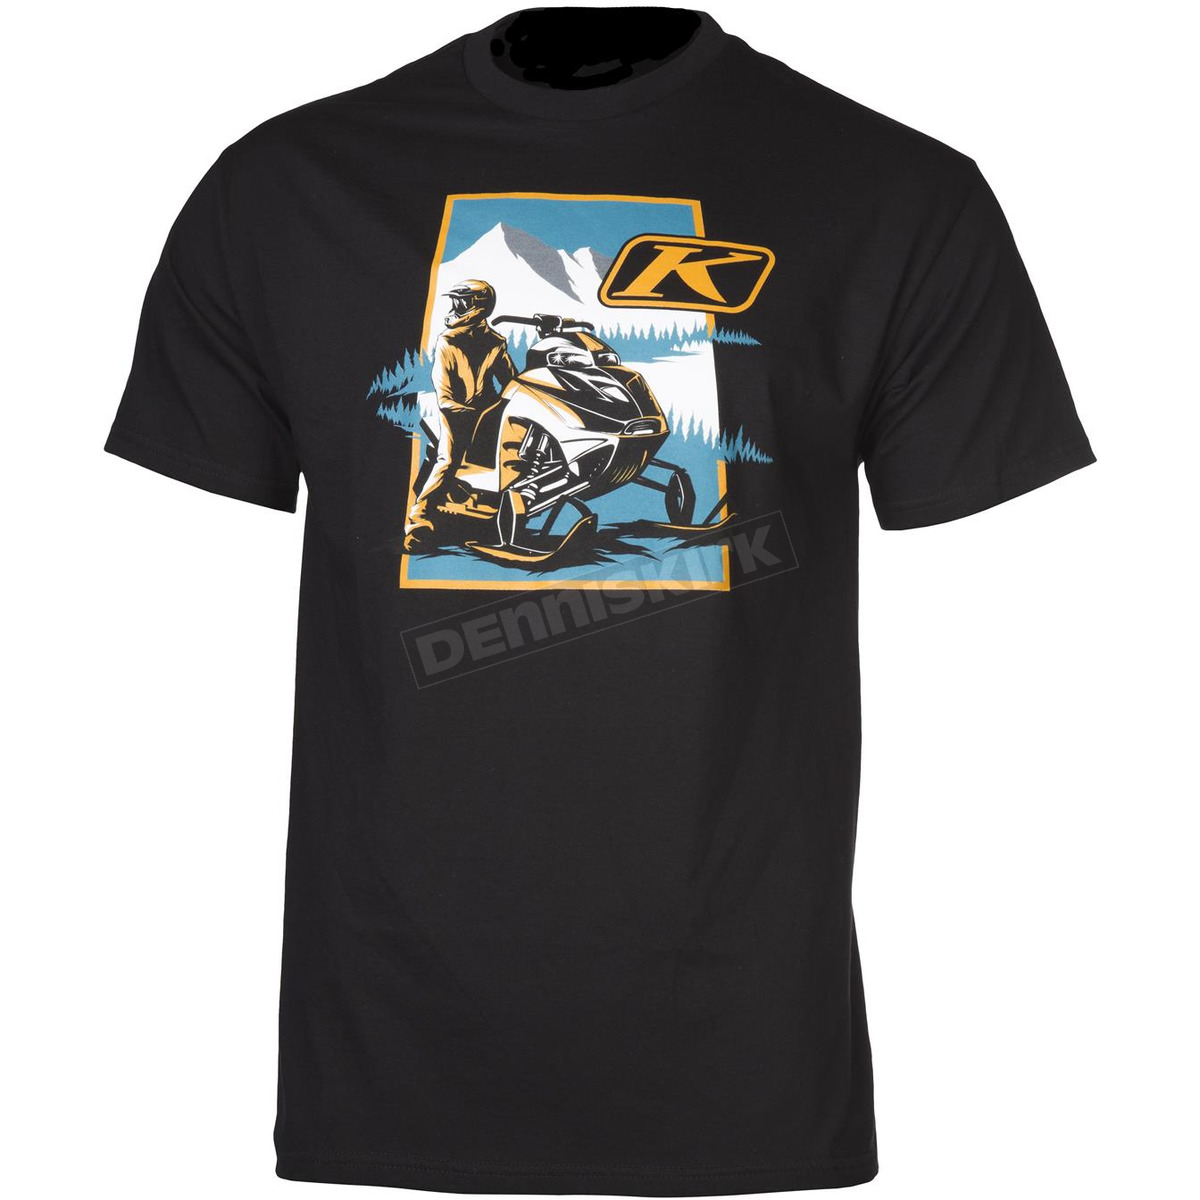 klim black motive t shirt 3512 000 150 000 snowmobile dennis kirk inc. Black Bedroom Furniture Sets. Home Design Ideas